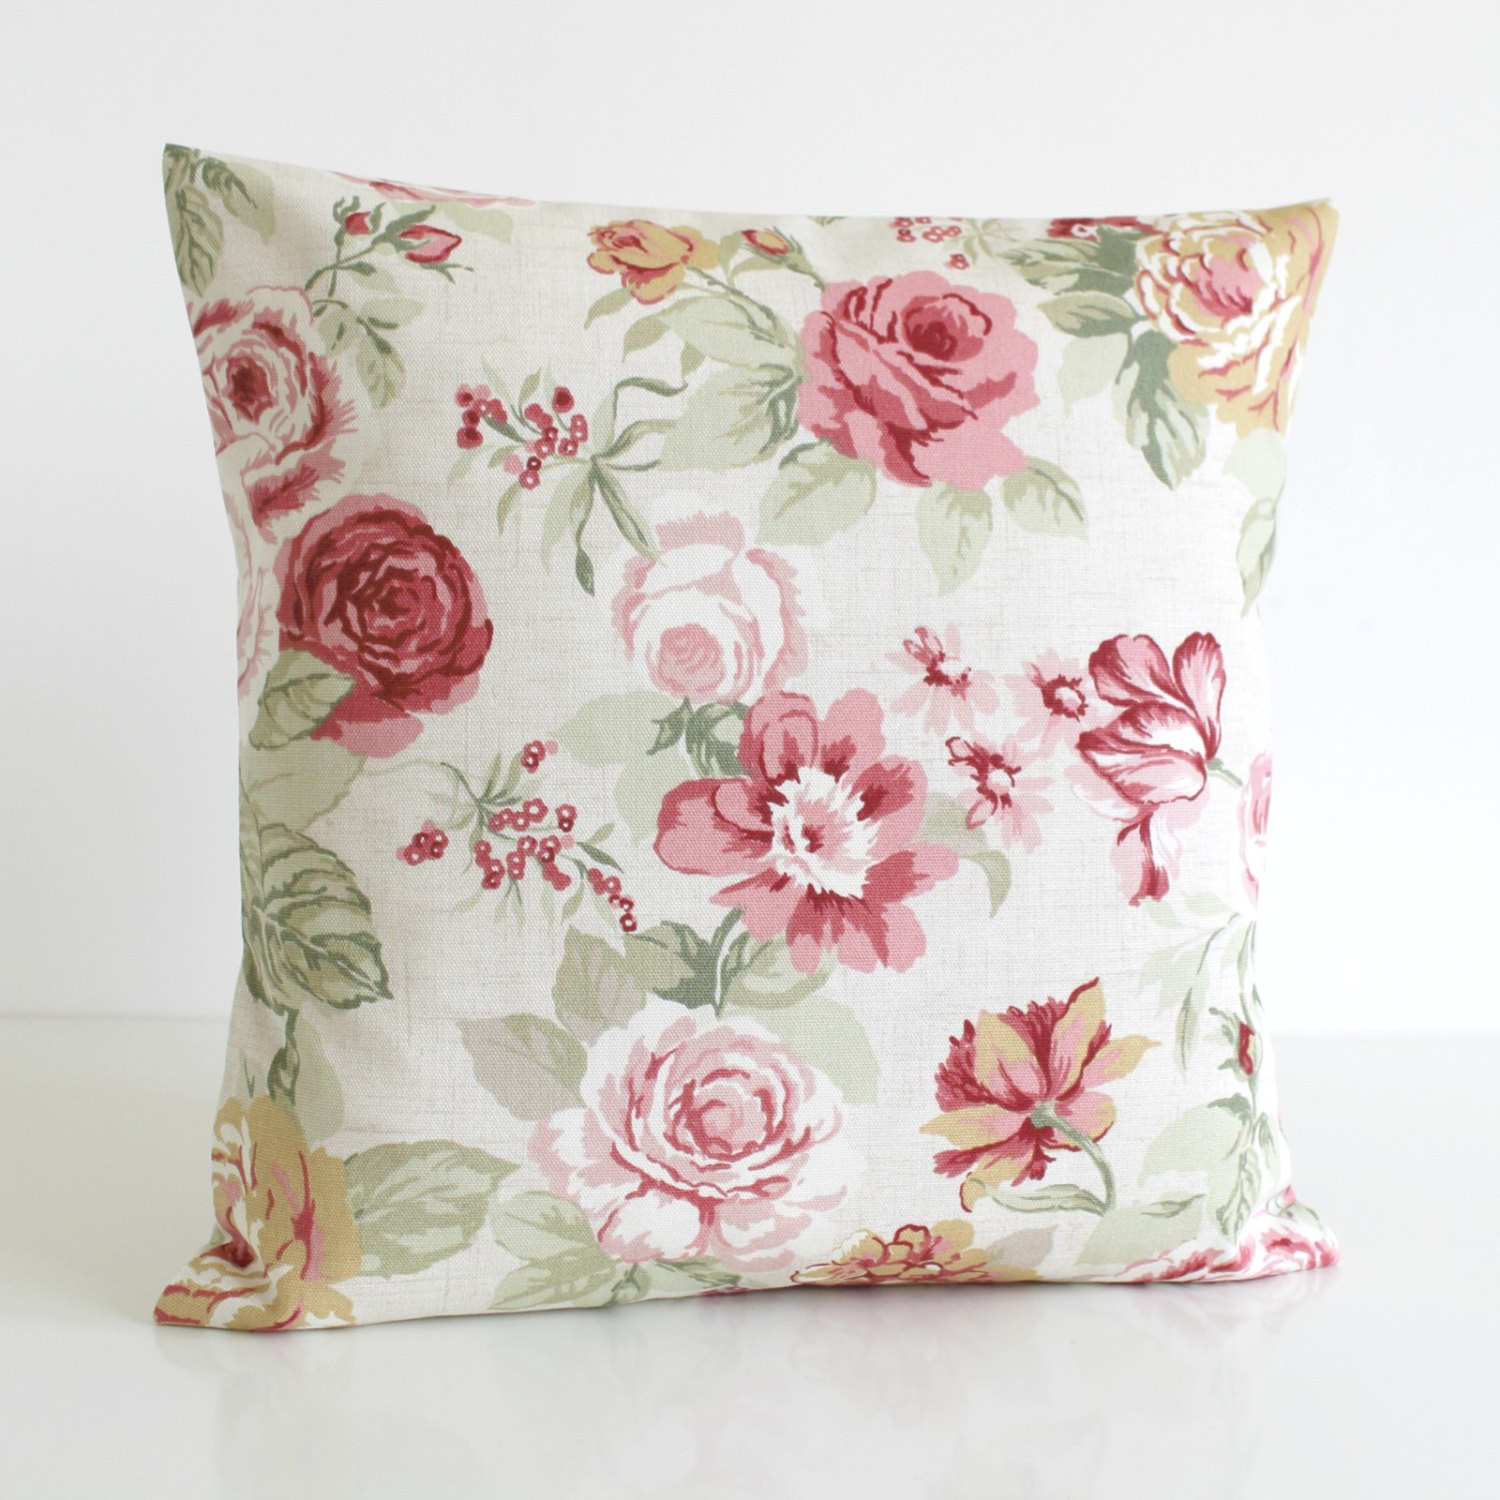 Best ideas about Shabby Chic Throw Pillows . Save or Pin Shabby Chic Decorative Pillow Cover Floral Cushion by Now.